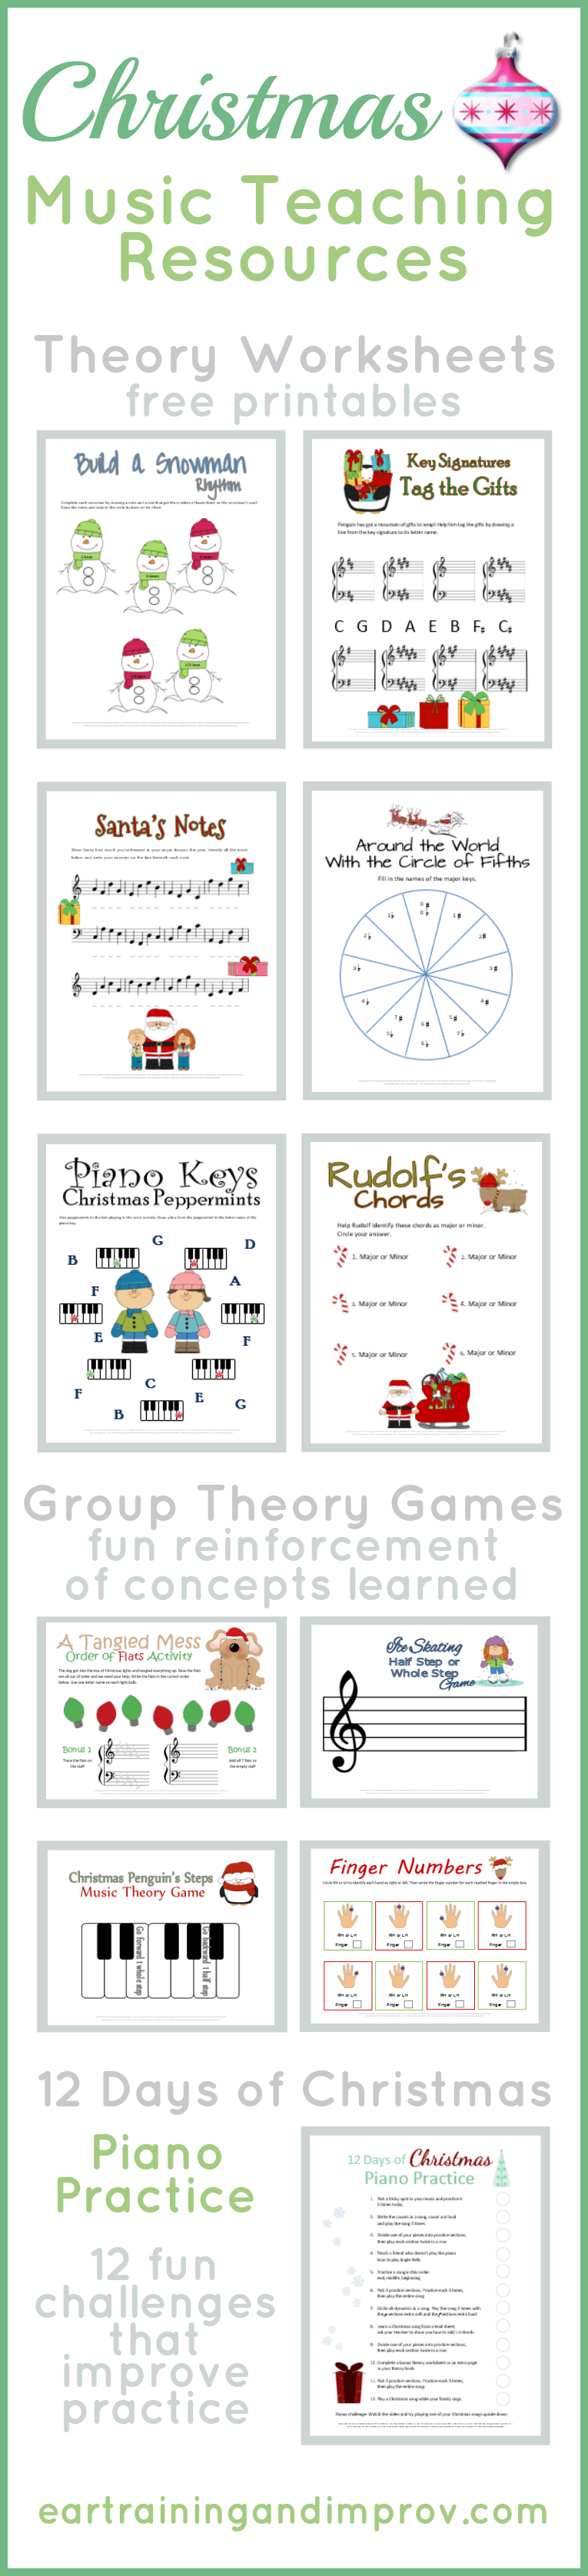 hight resolution of Christmas Music Theory Worksheets - 20+ Free Printables